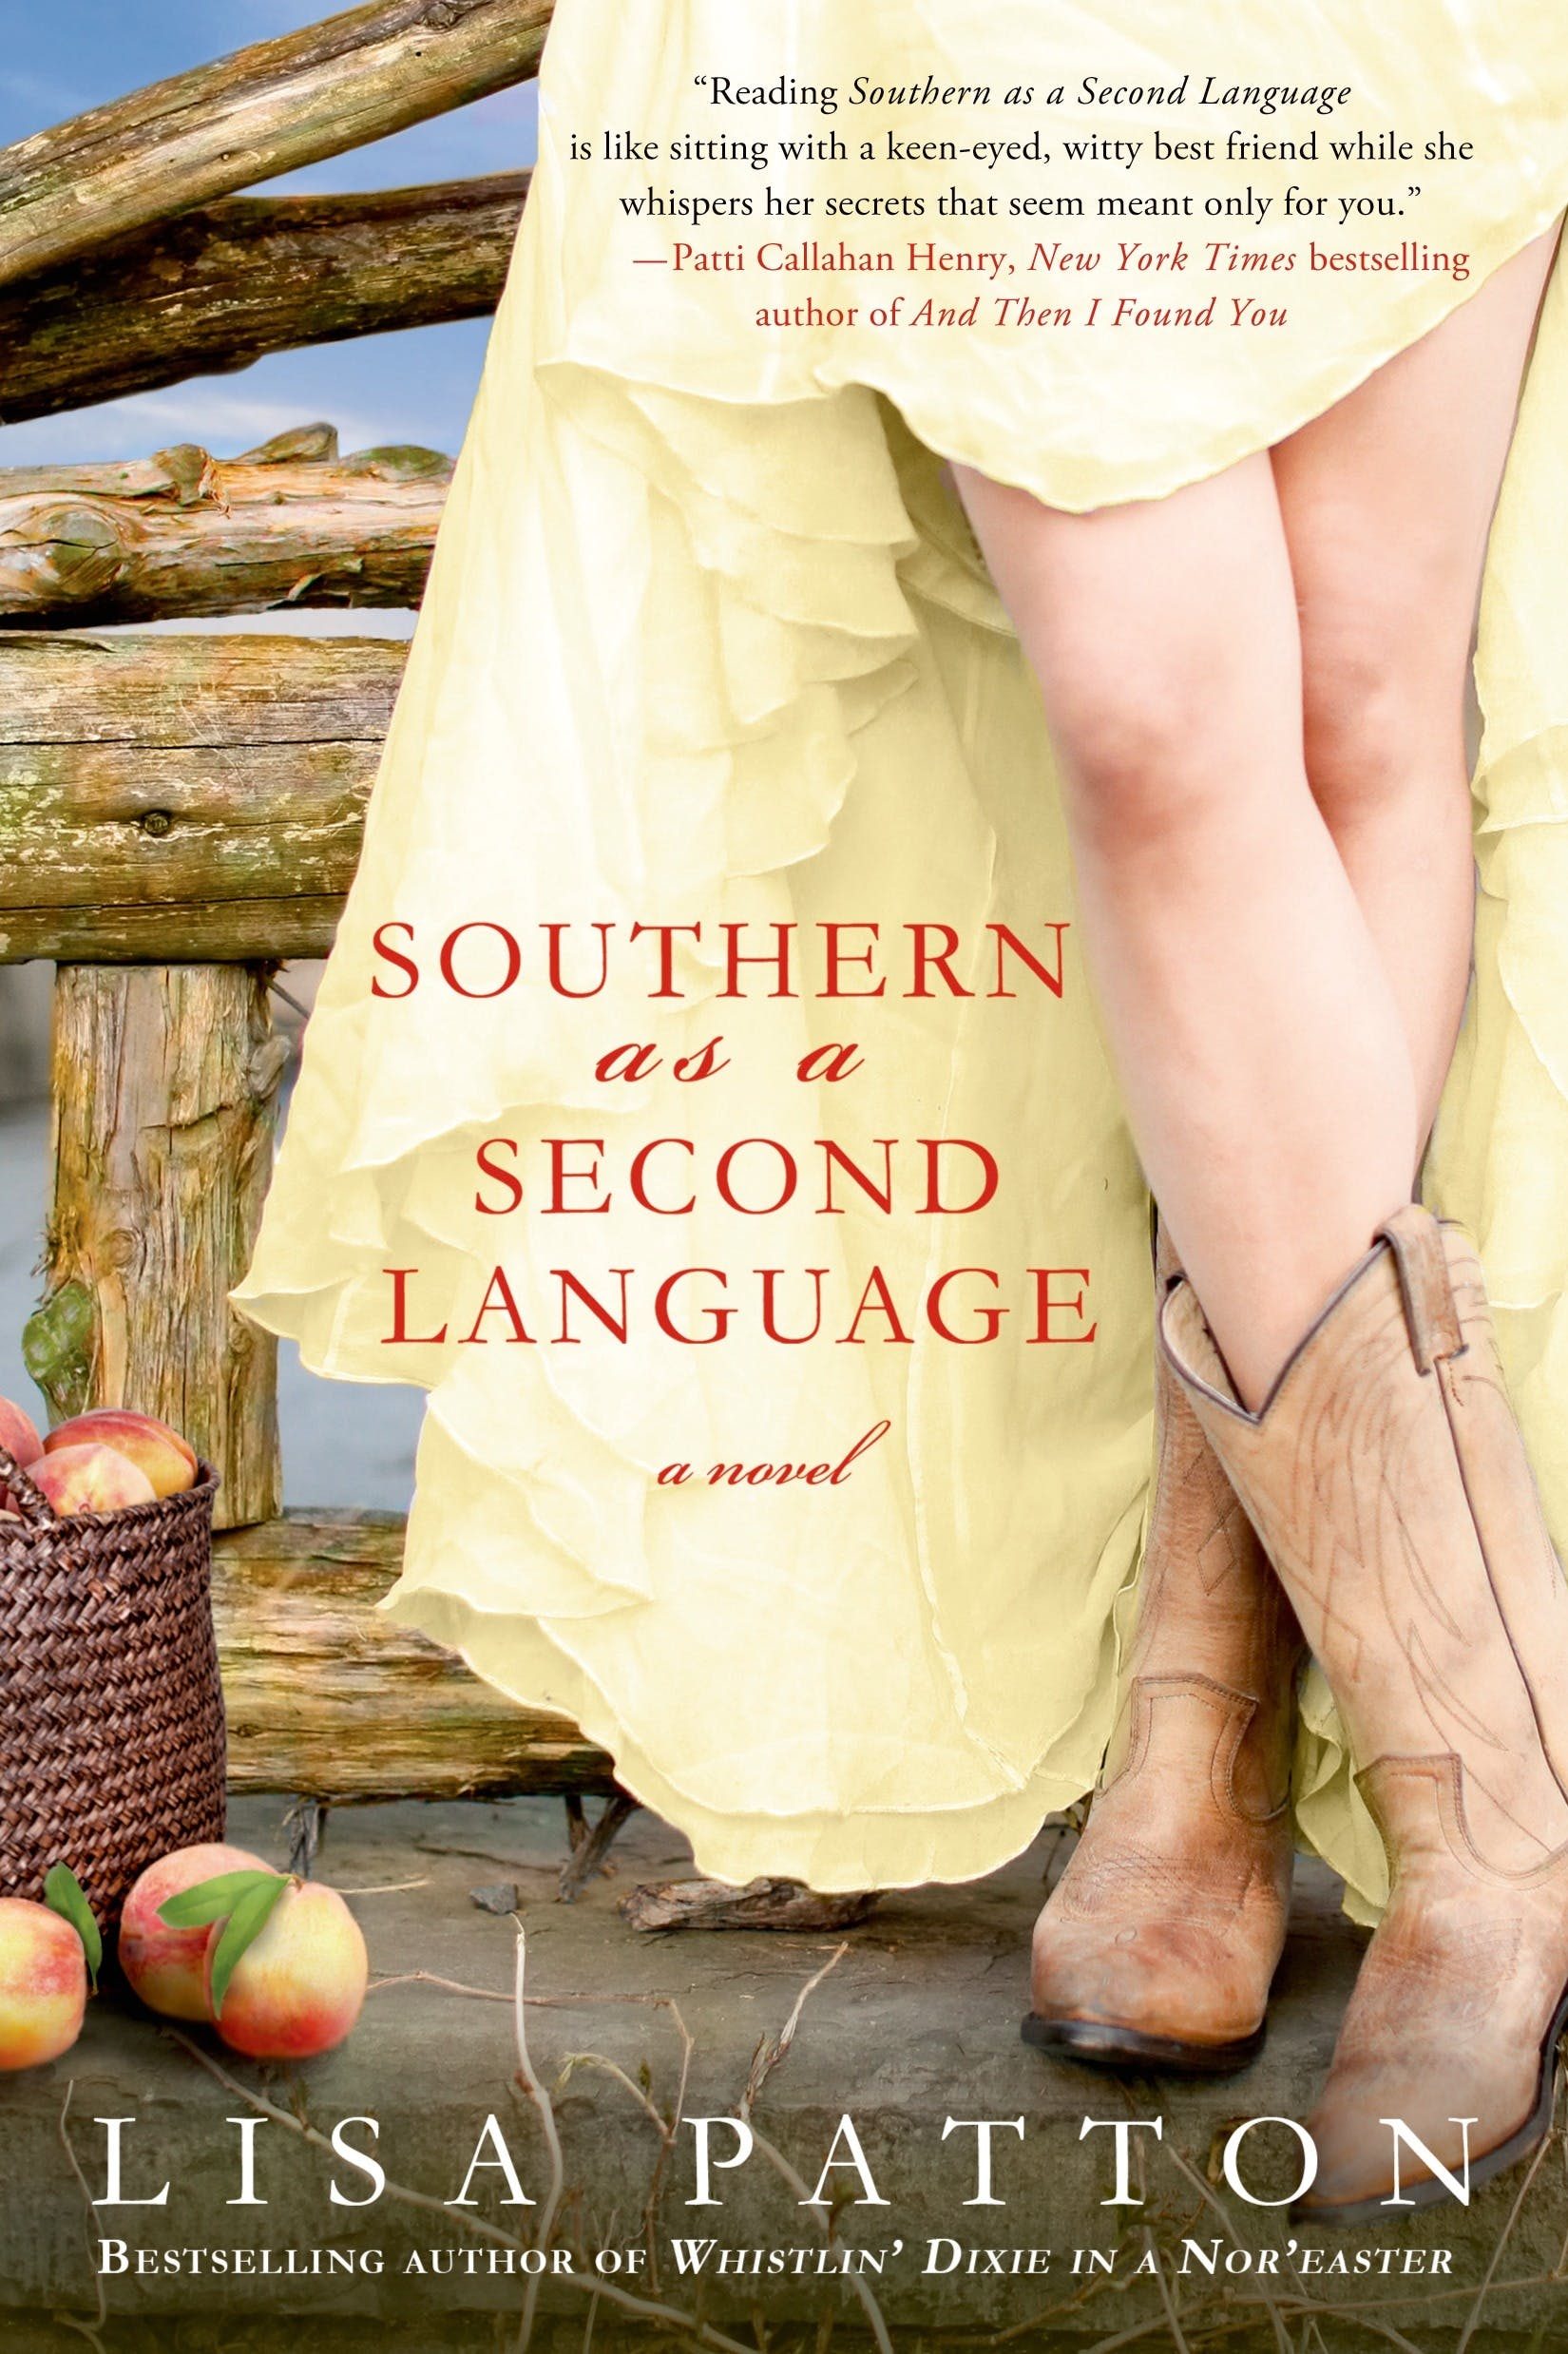 Image of Southern as a Second Language